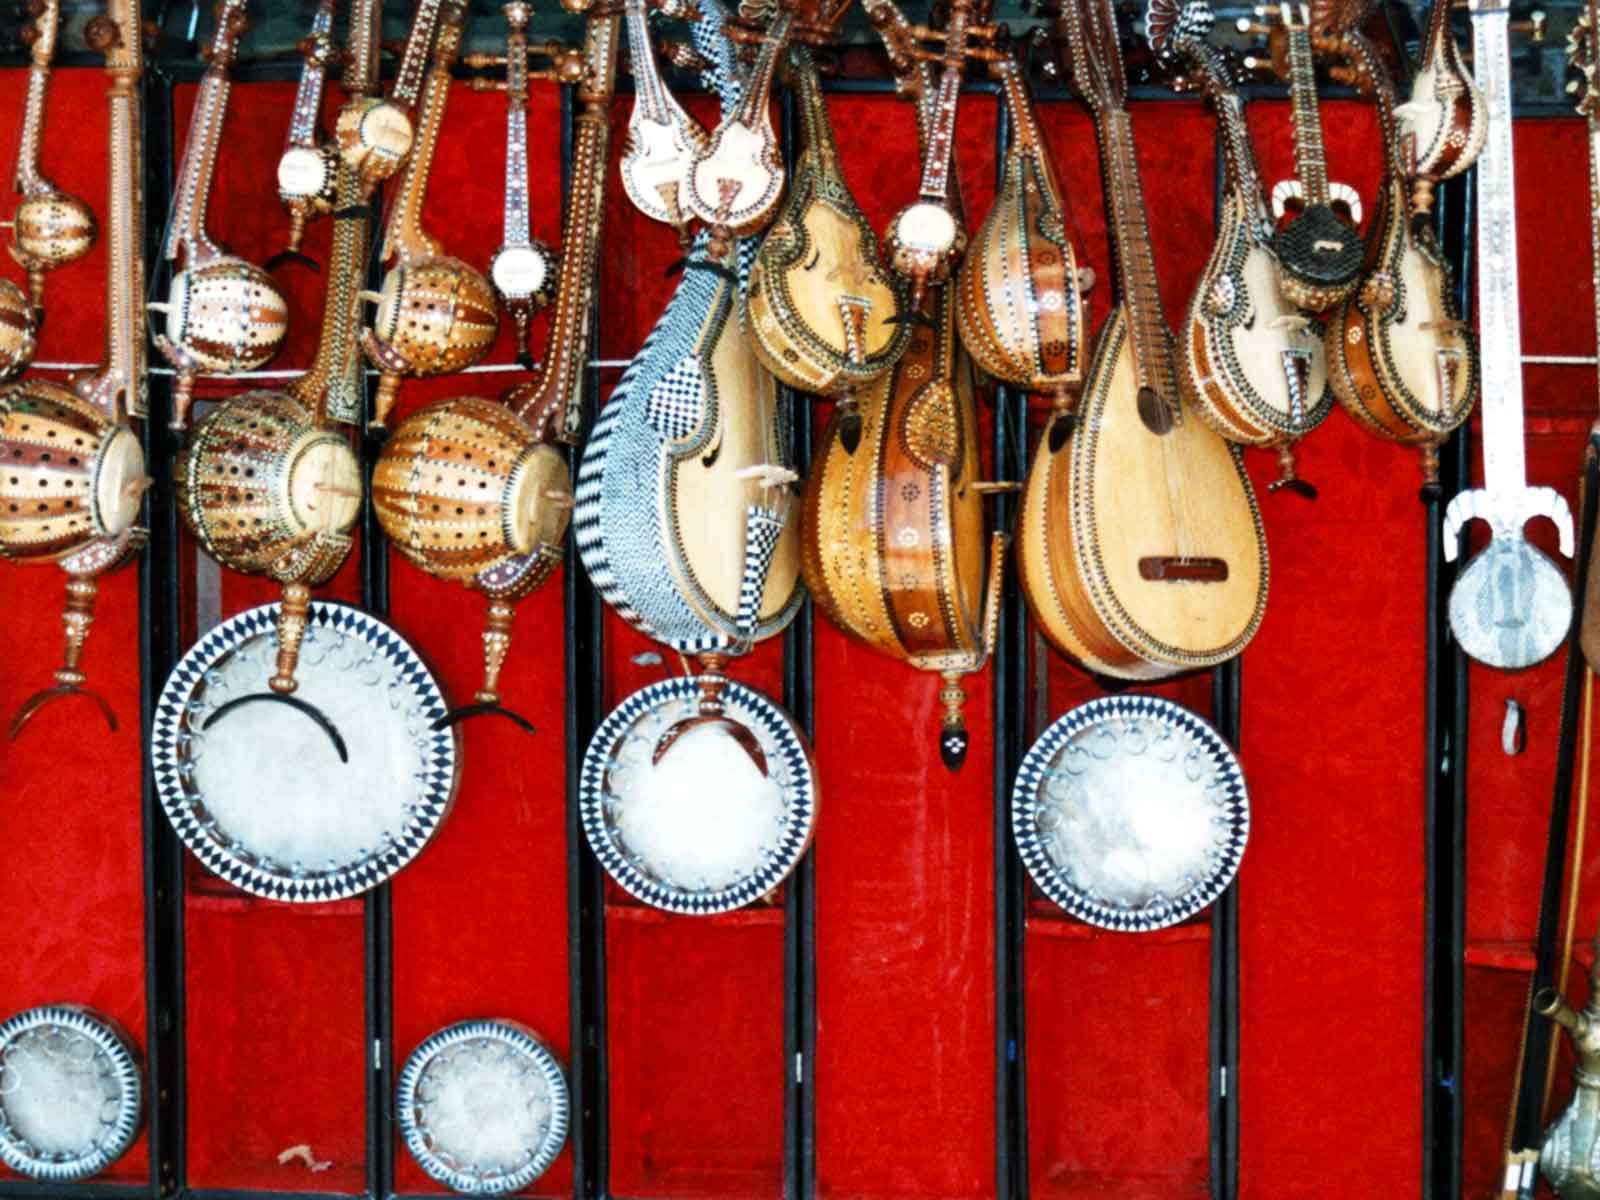 Musical instruments for sale in Kashgar - University of Hawaii - Silk Road China Study Tour - Steven Andrew Martin 1995